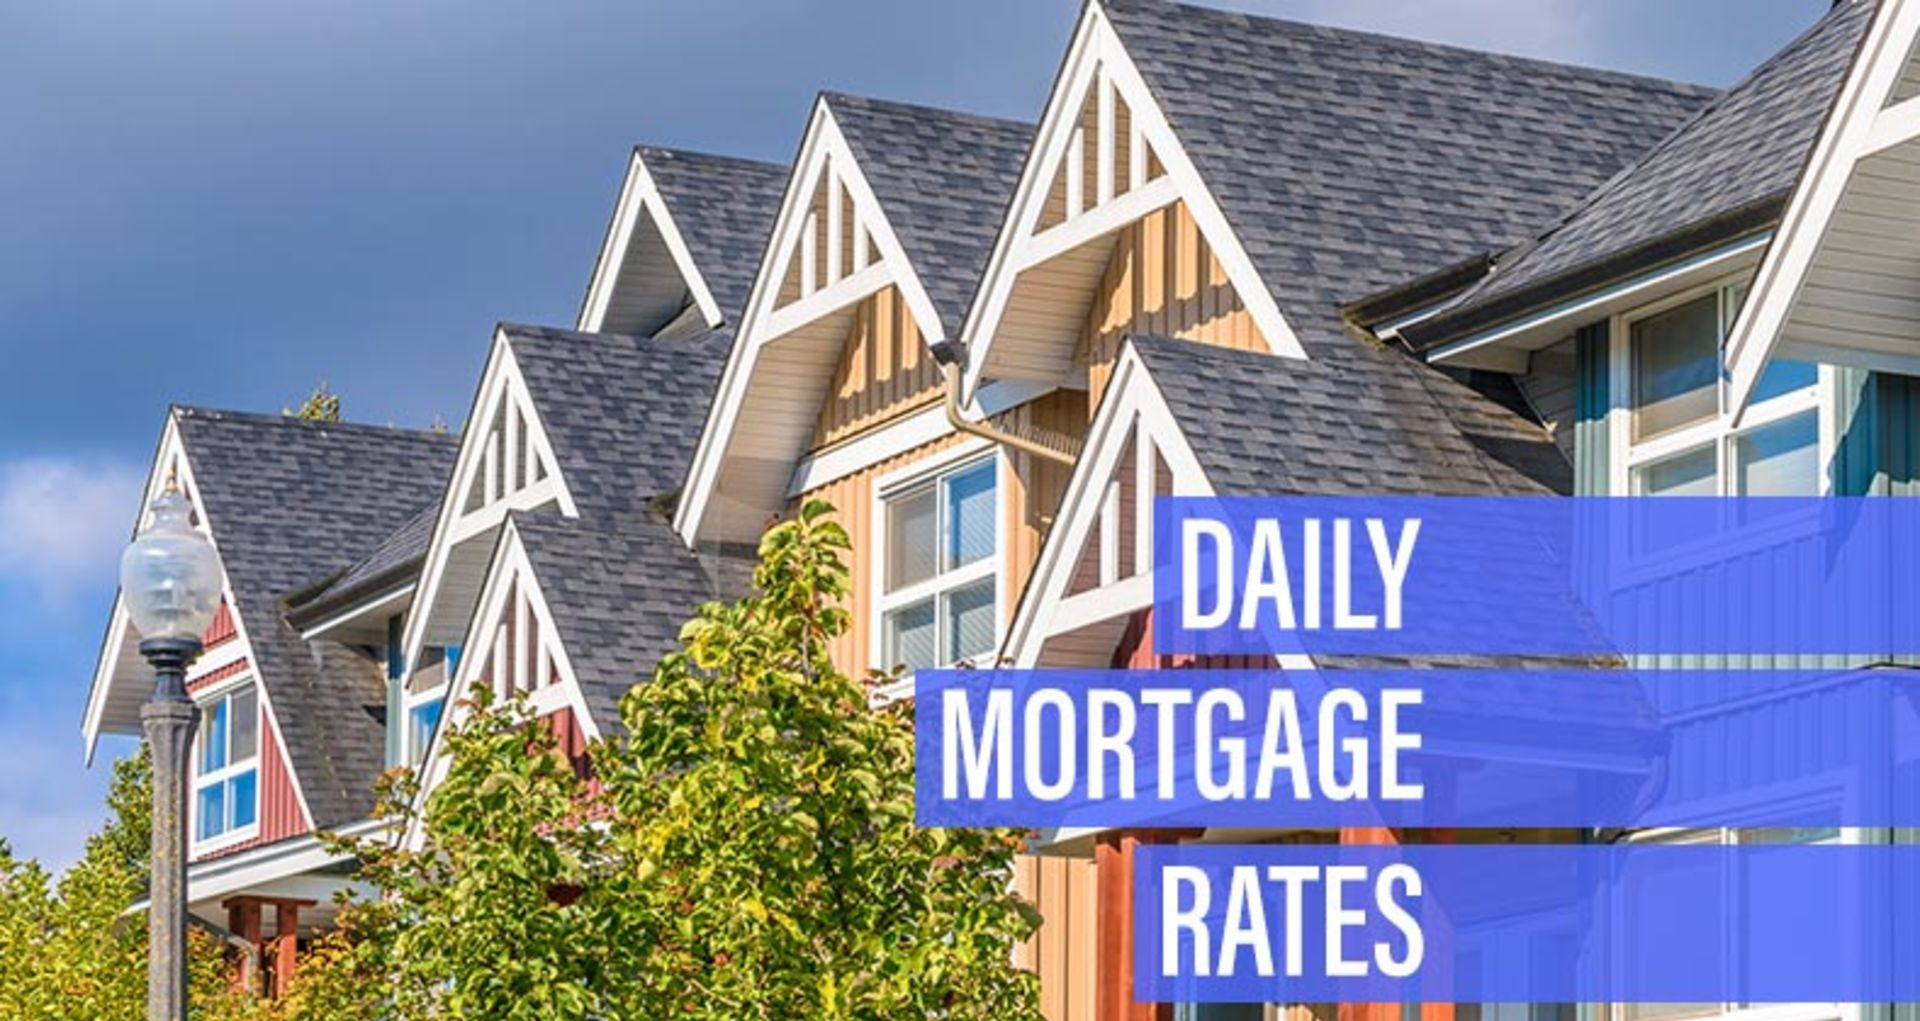 Important mortgage rate dips for Tuesday